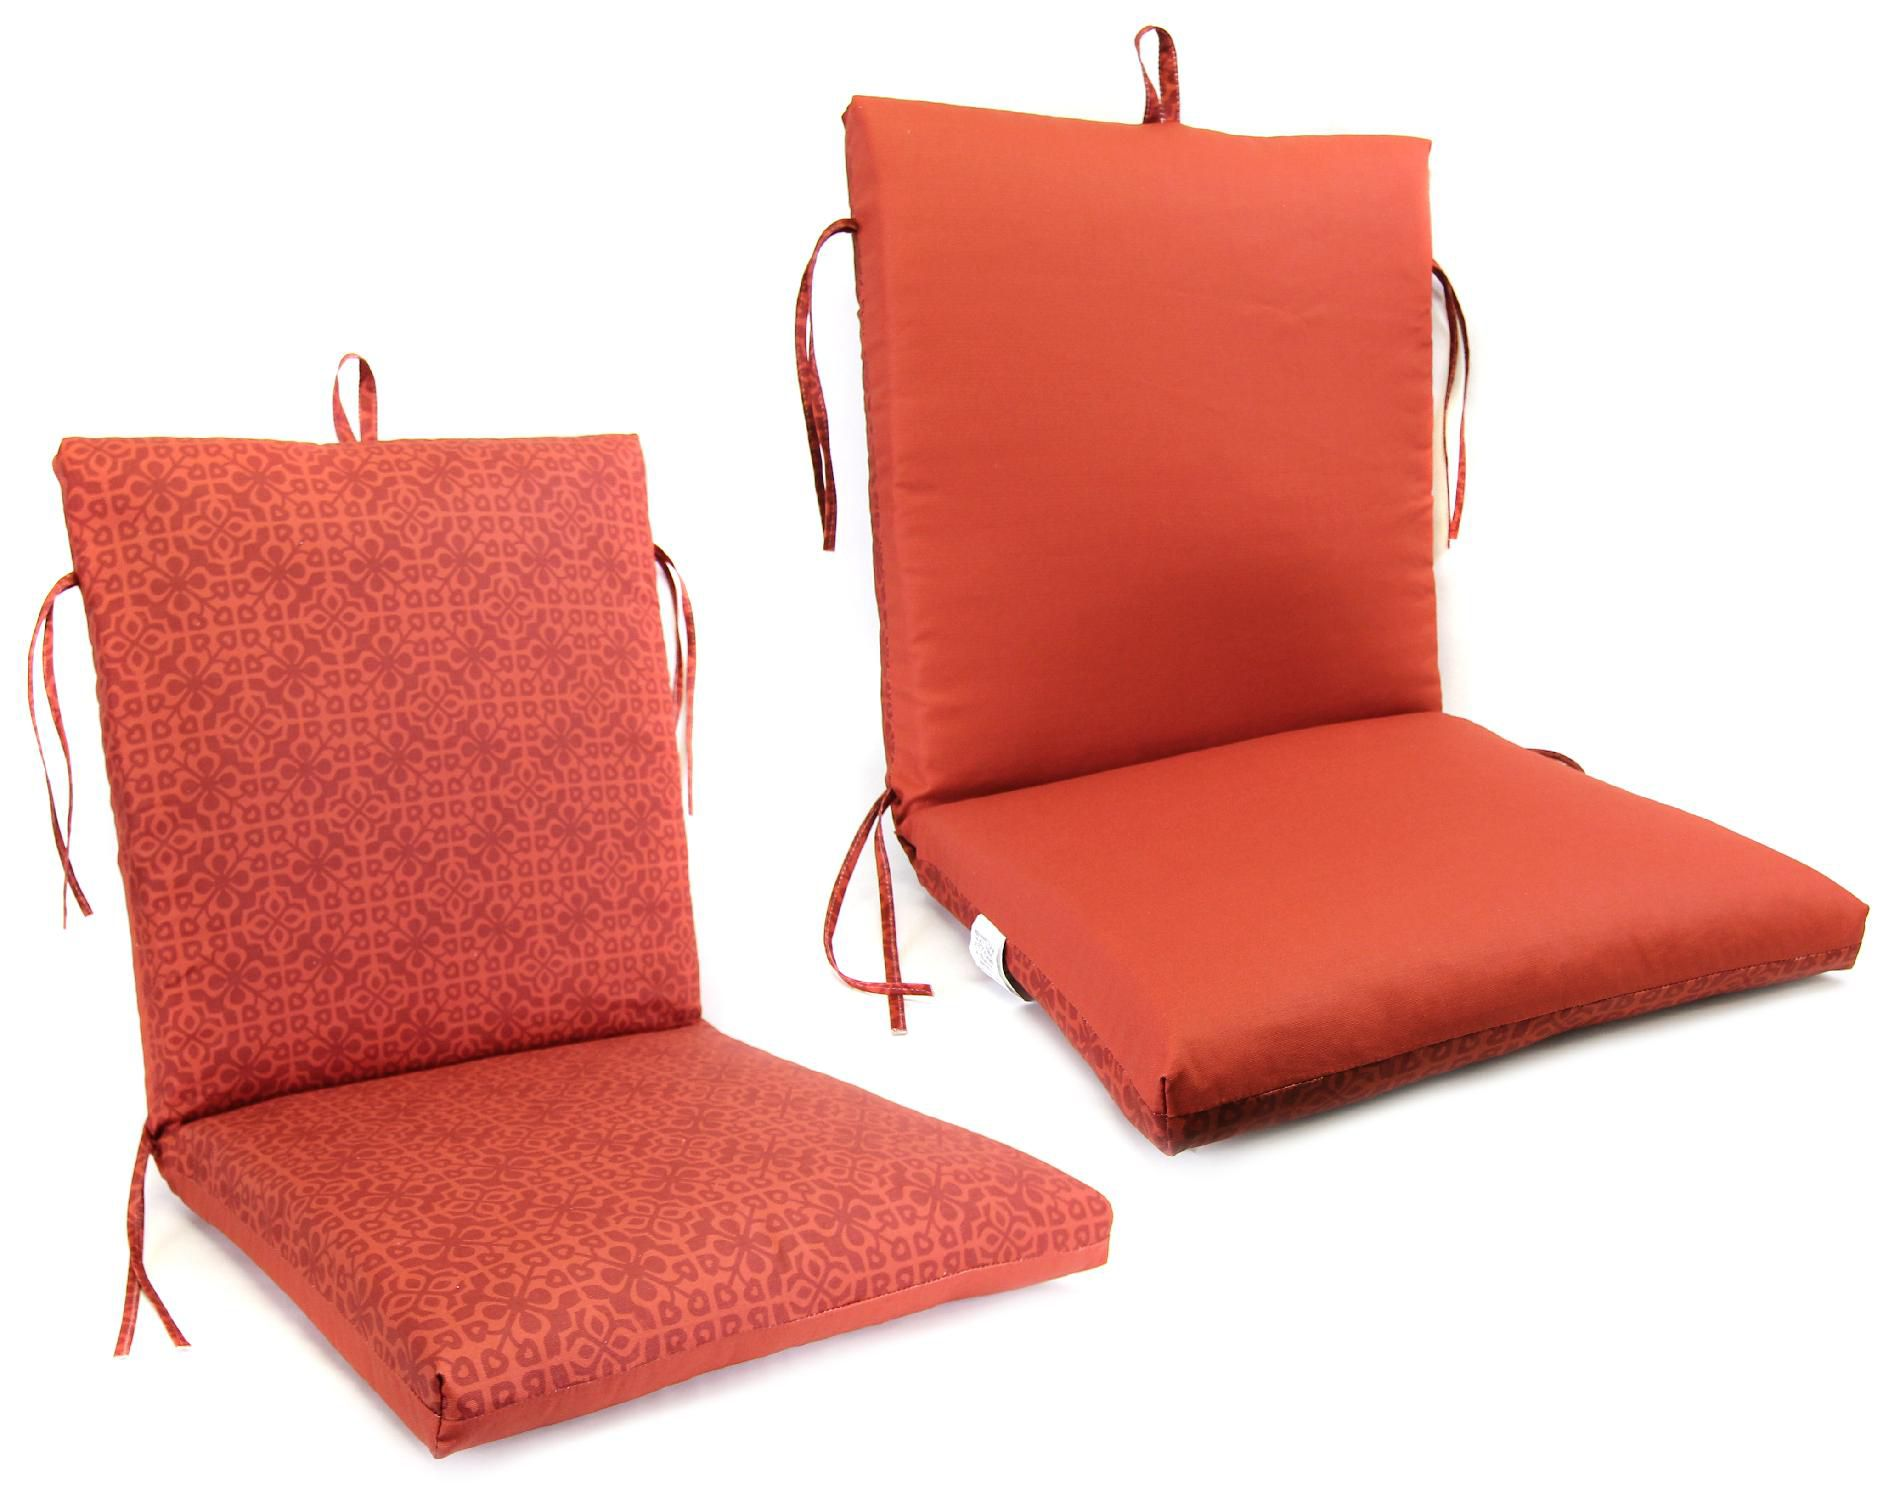 Replacement Cushions For Patio Chairs Patio Chair Cushions On Clearance Sears